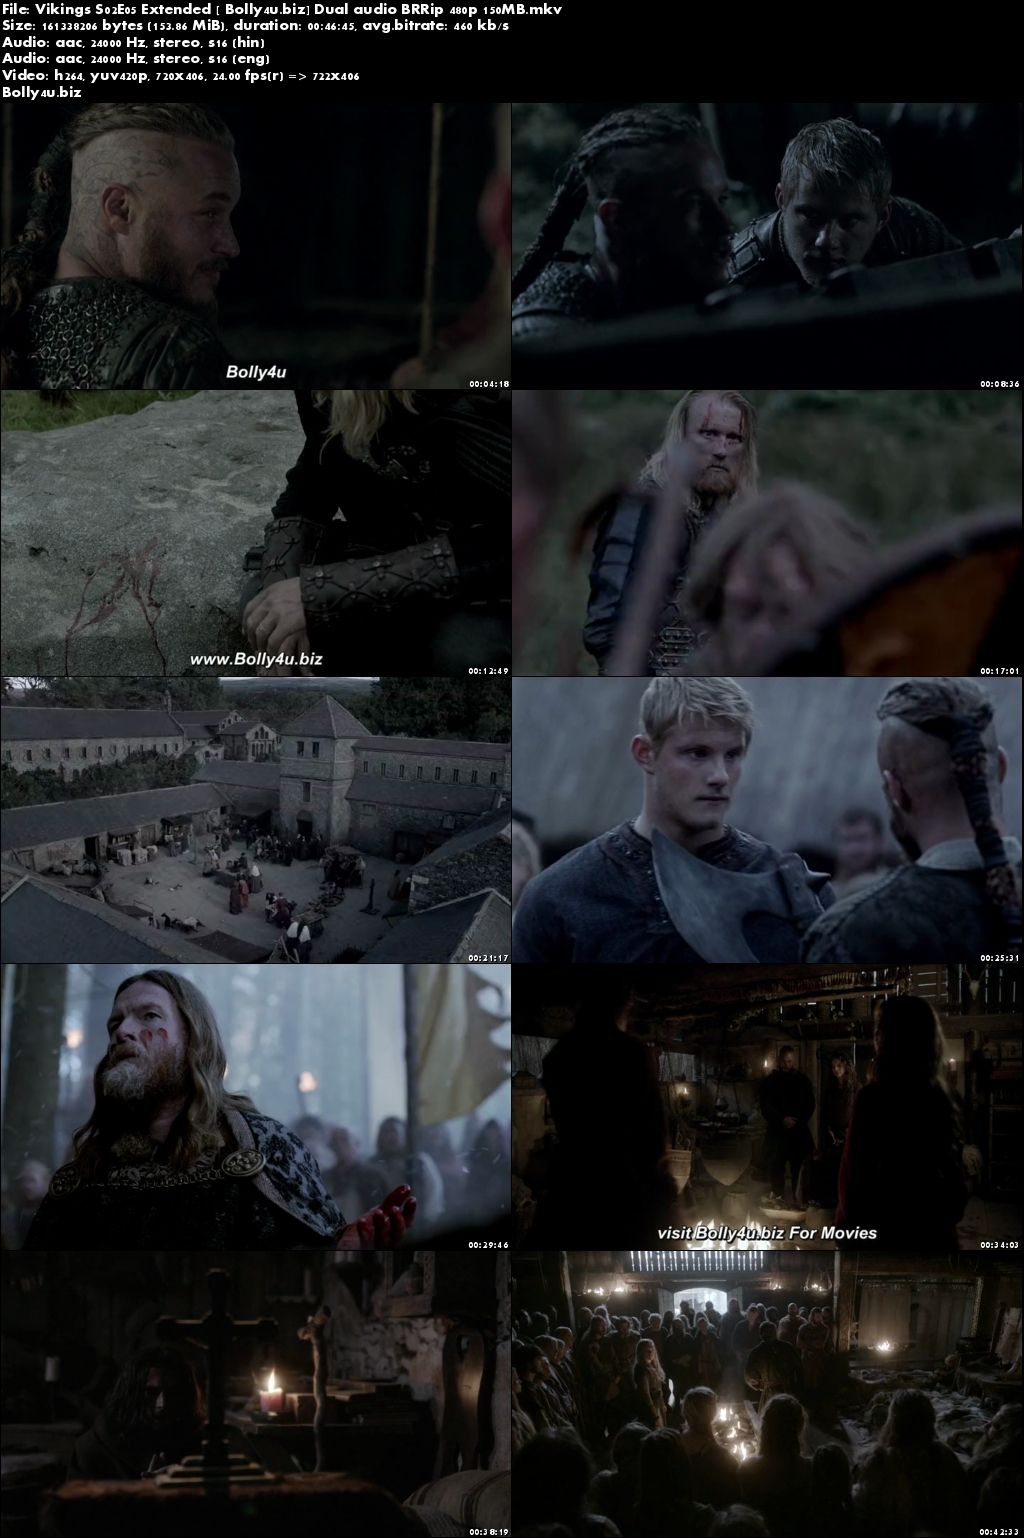 Vikings S02E05 Extended BRRip 150Mb Hindi Dual Audio 480p Download